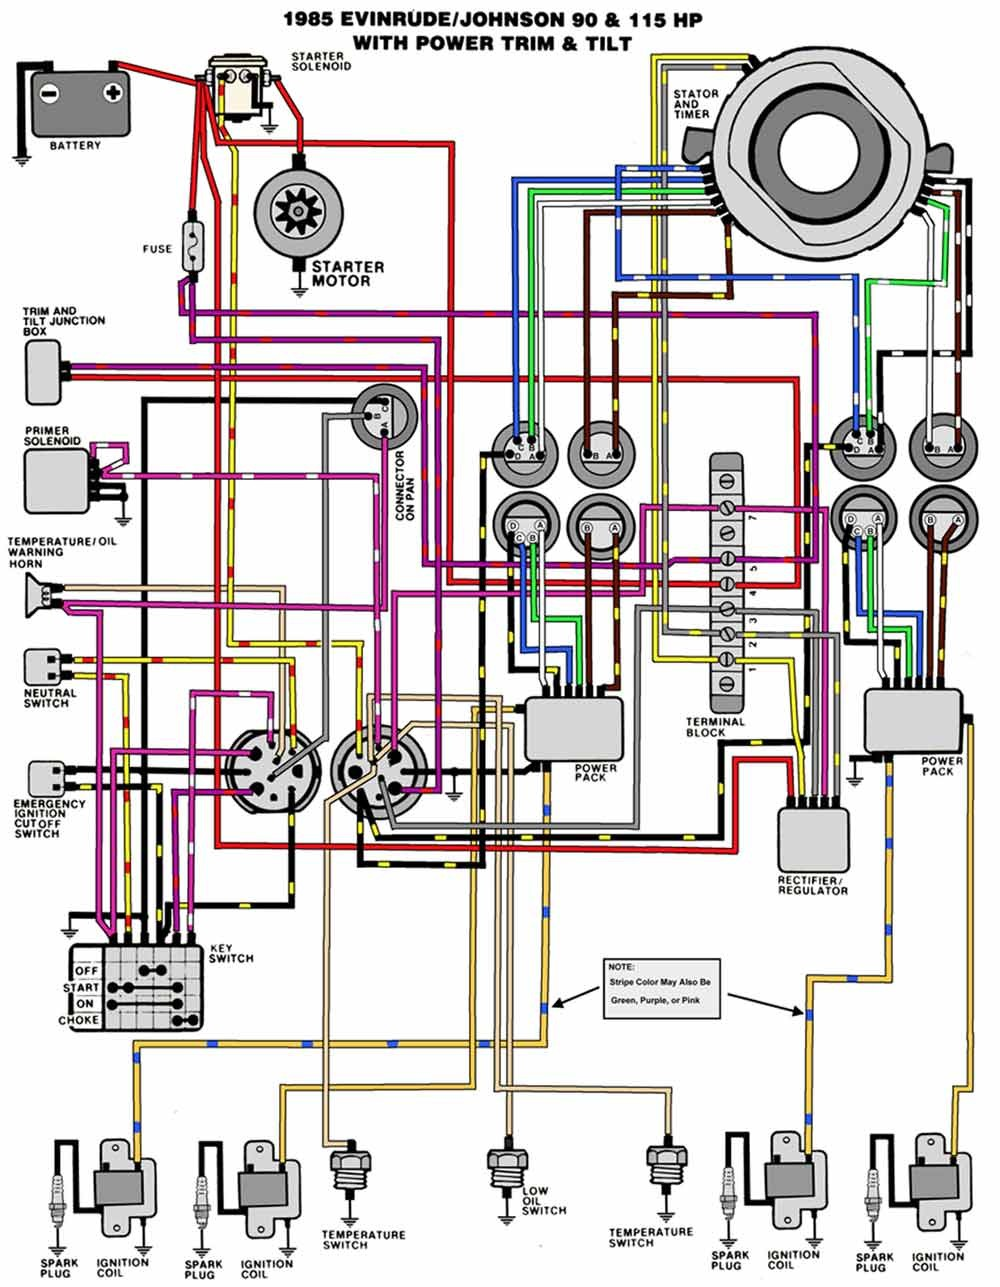 wrg 3991] 115 hp mercury outboard wiring diagram